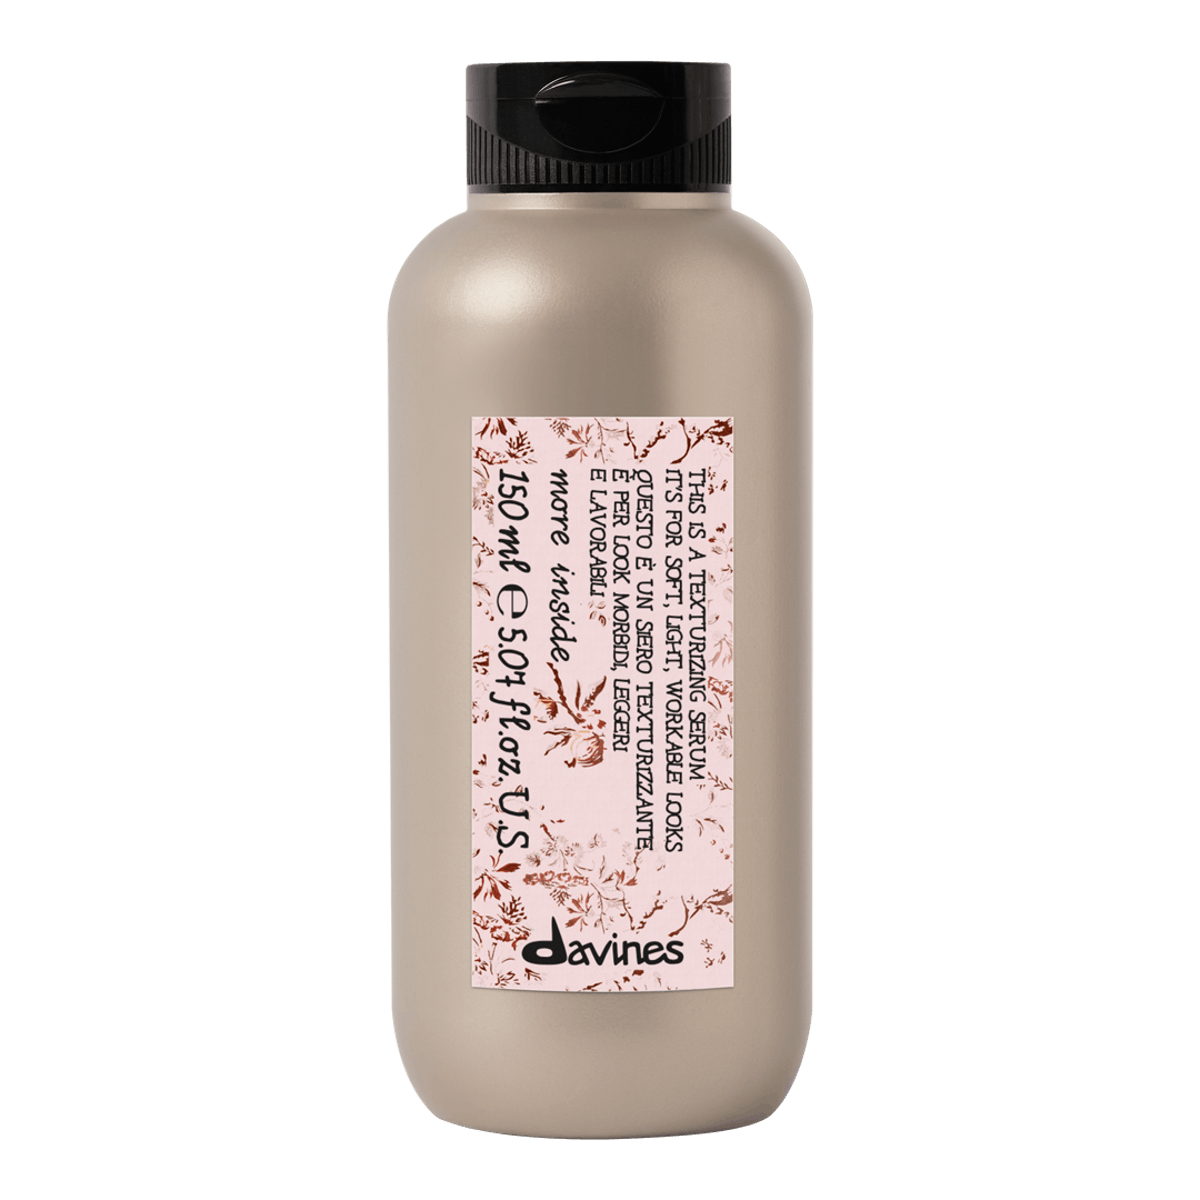 This is a Texturizing Serum